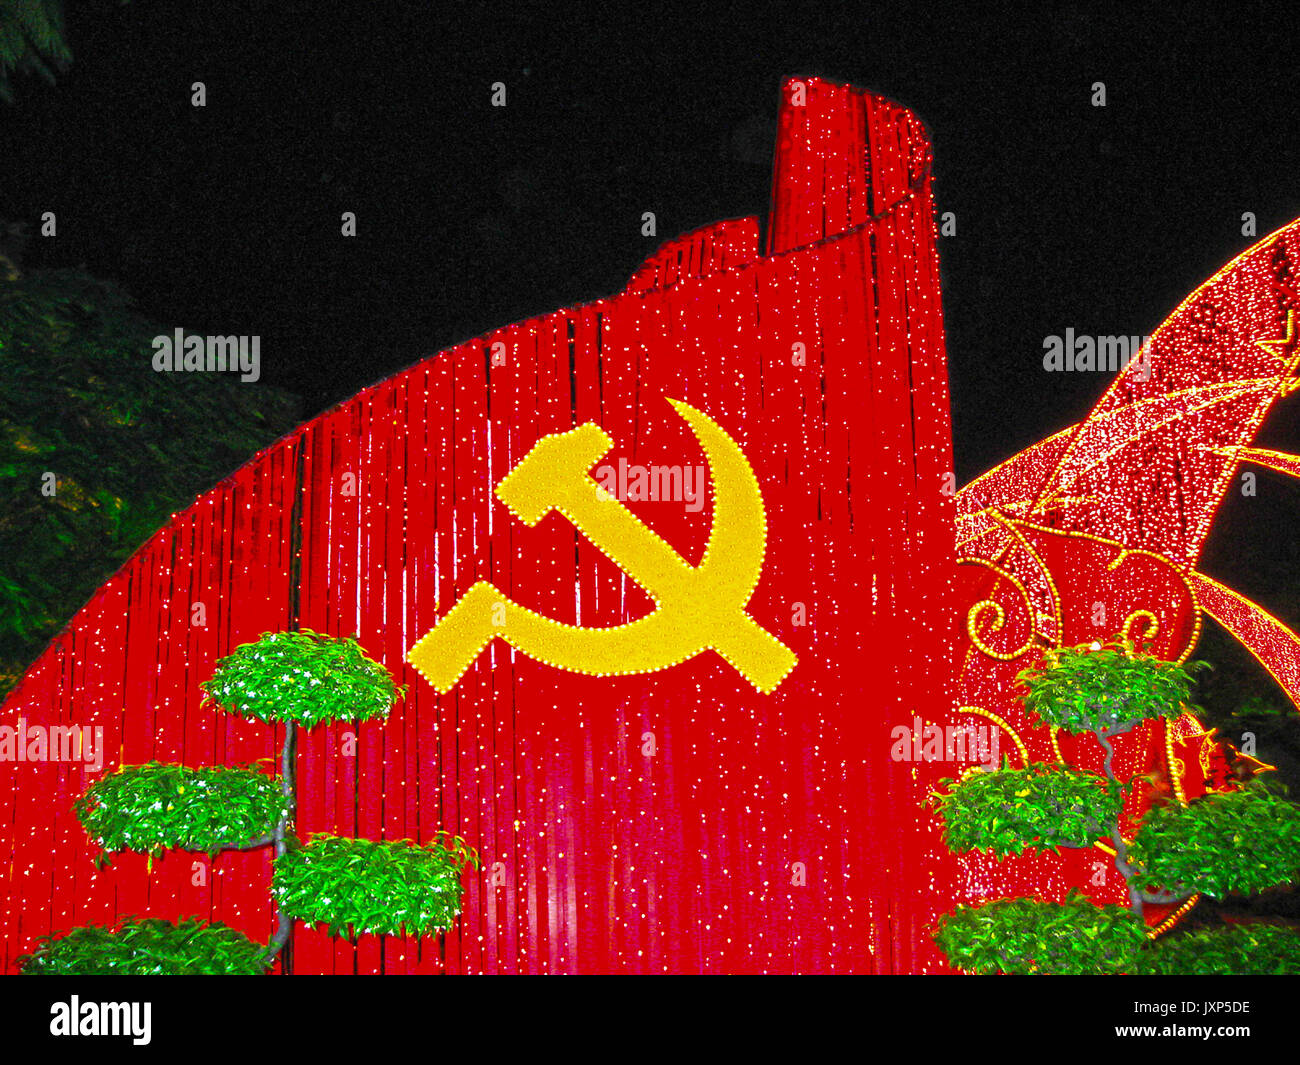 Tet Lunar New Year celebrations in the Central Park of the Communism in Saigon - Stock Image